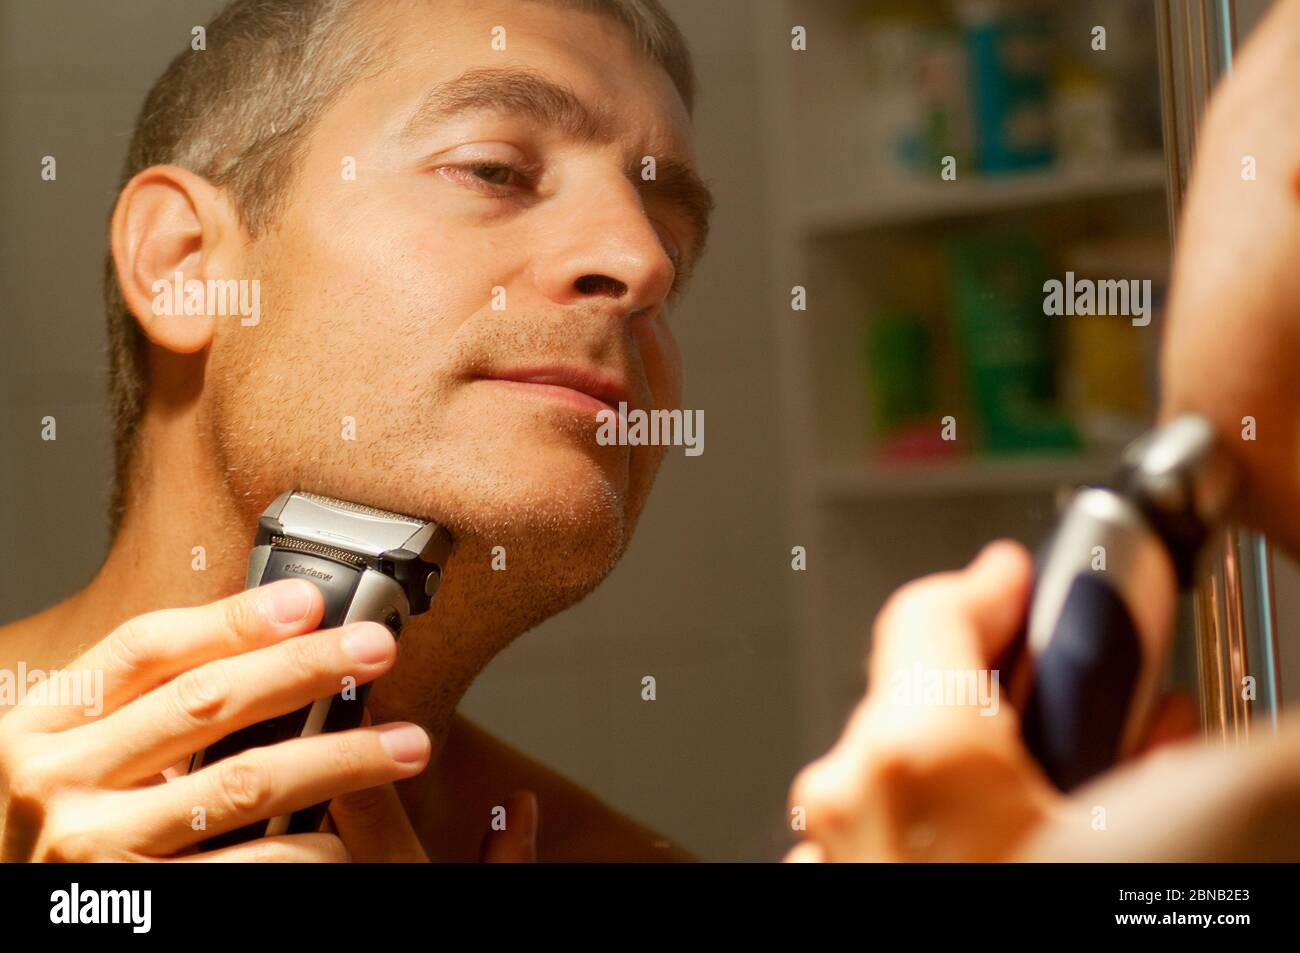 Mature man shaving his beard in front of mirror. Close view. Stock Photo